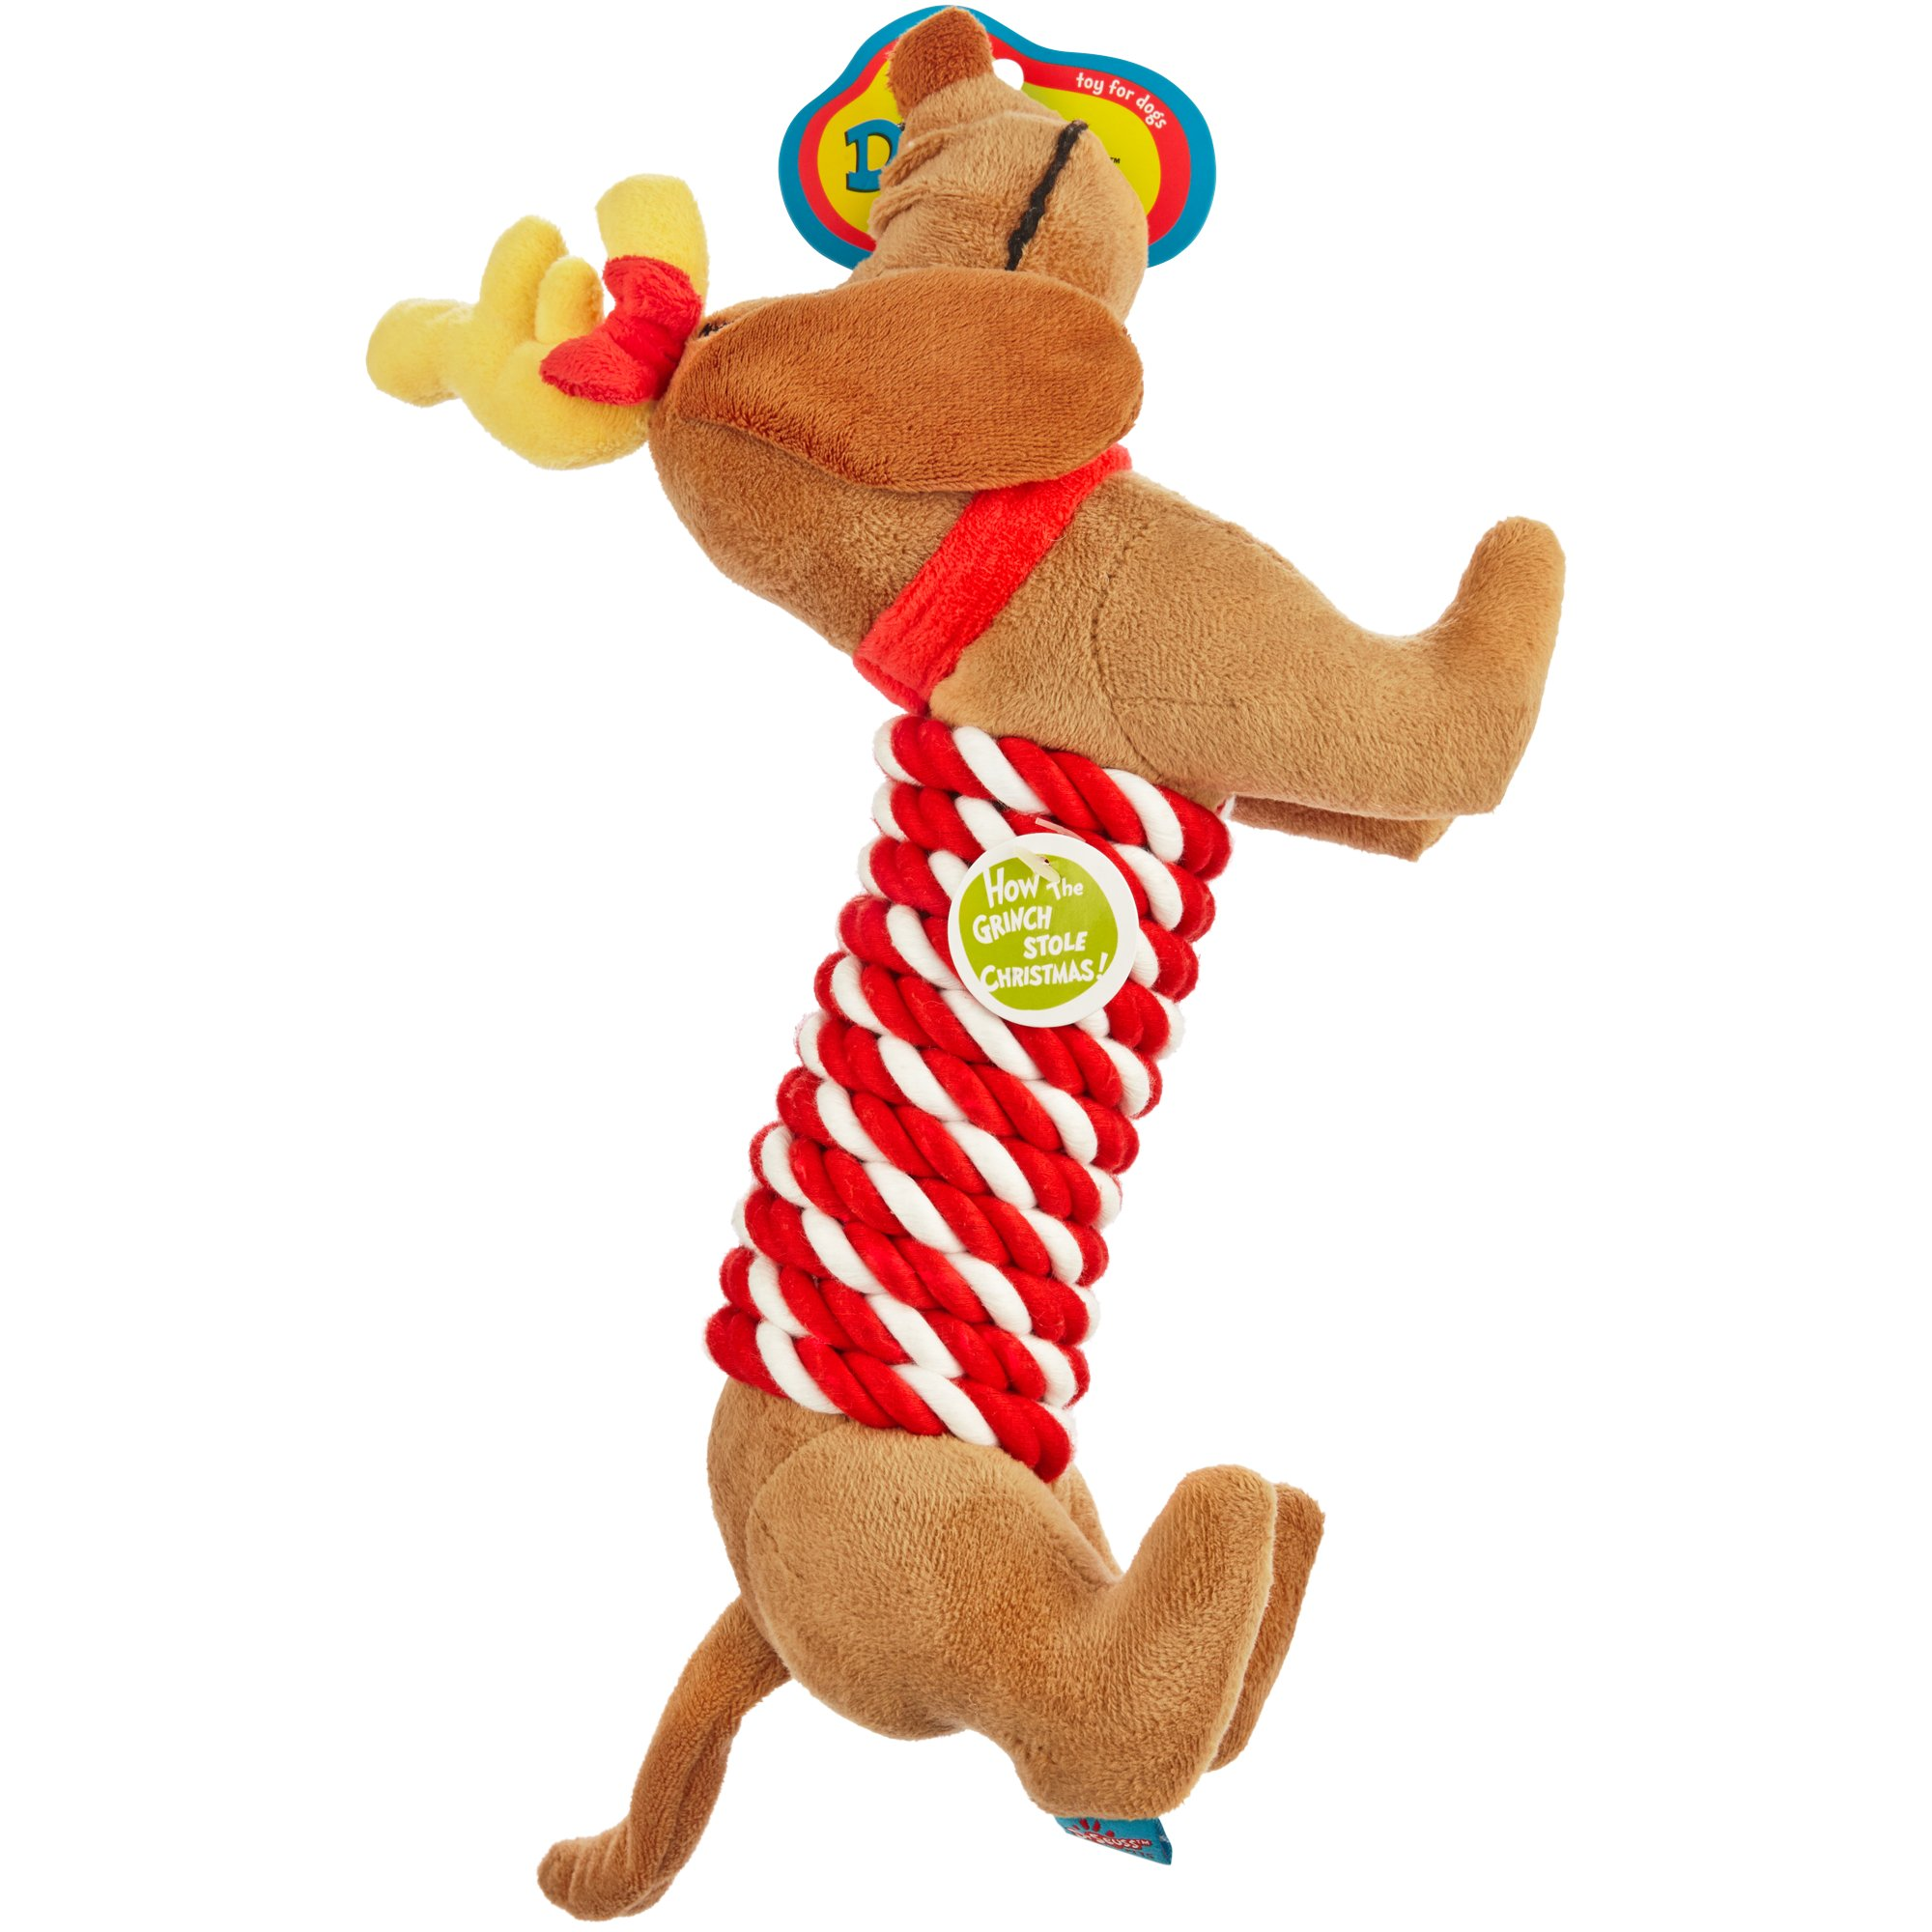 dr seuss how the grinch stole christmas max rope stick dog toy - How The Grinch Stole Christmas Dog